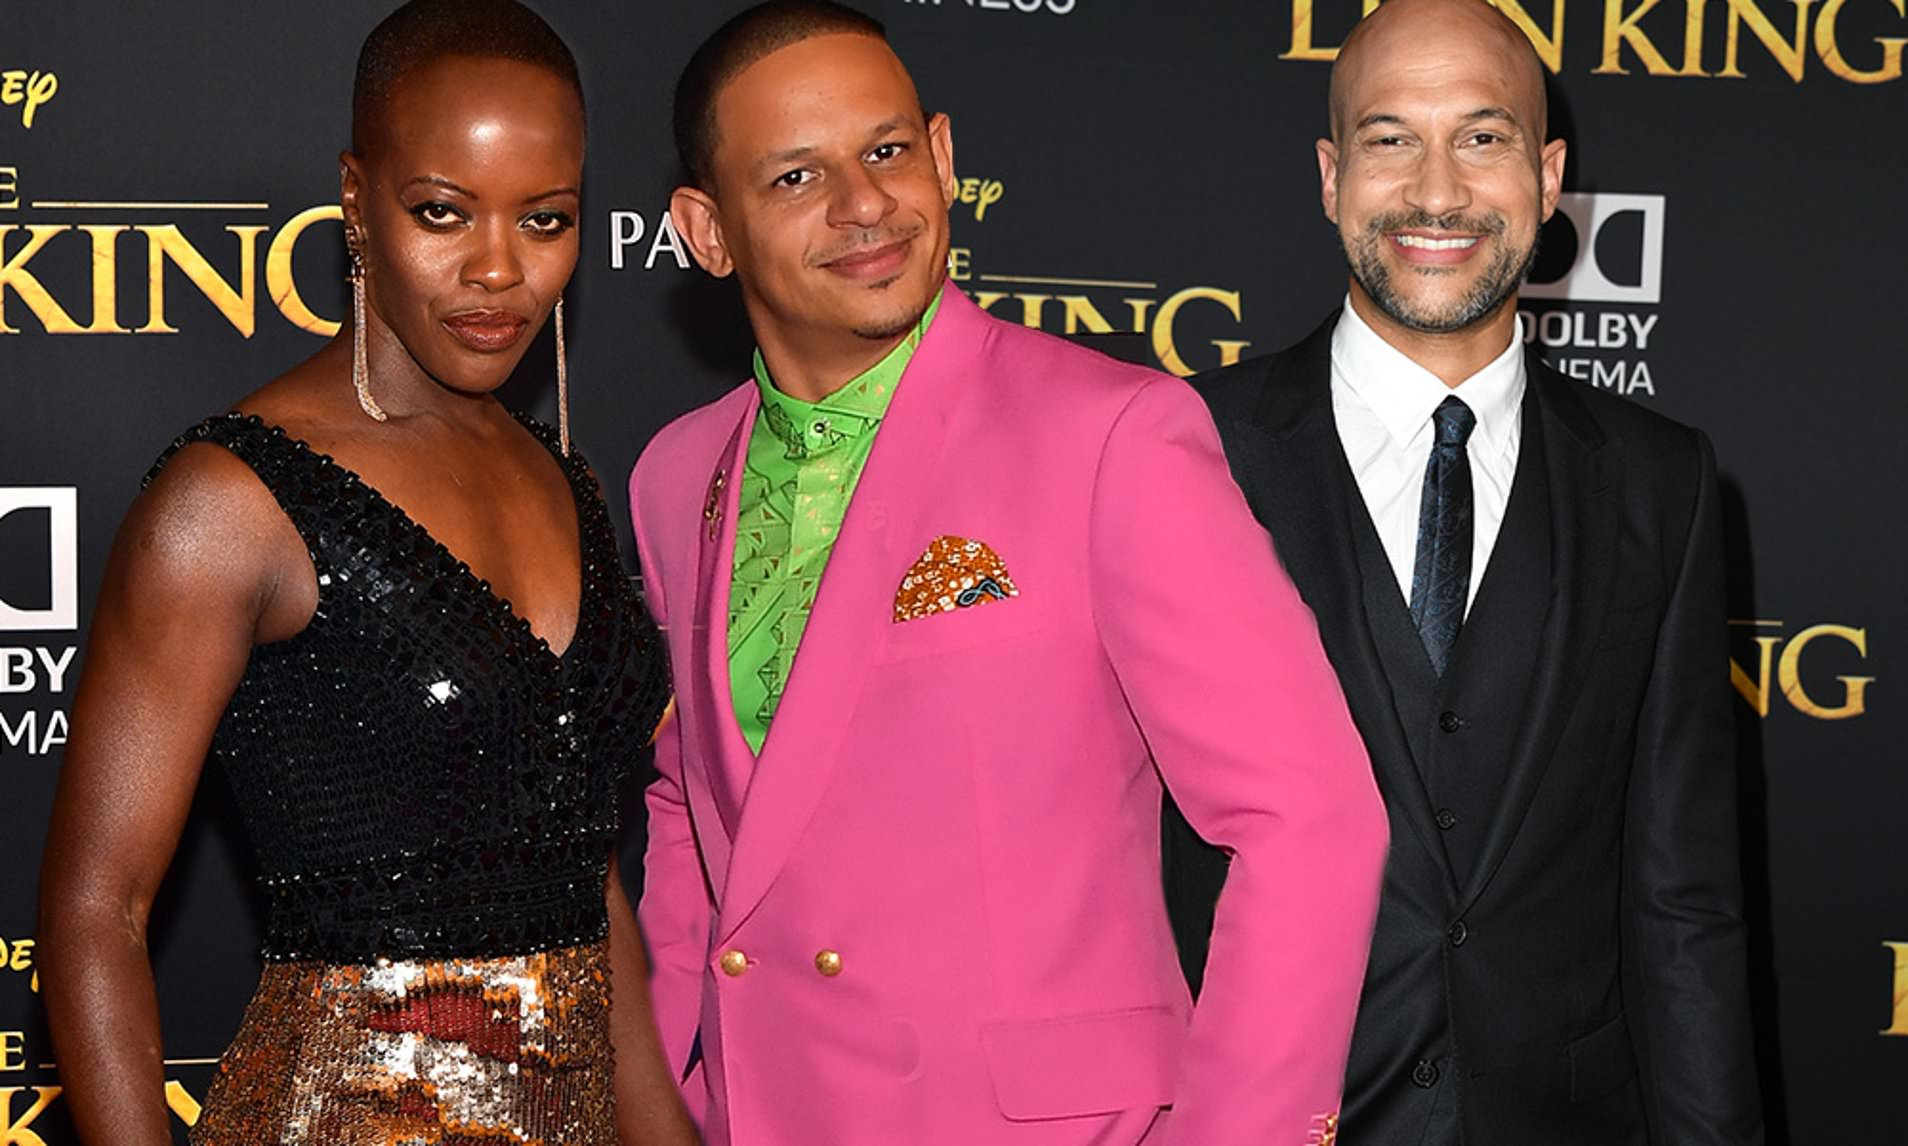 Keegan Michael Key The Lion King Excited To Be Part Of